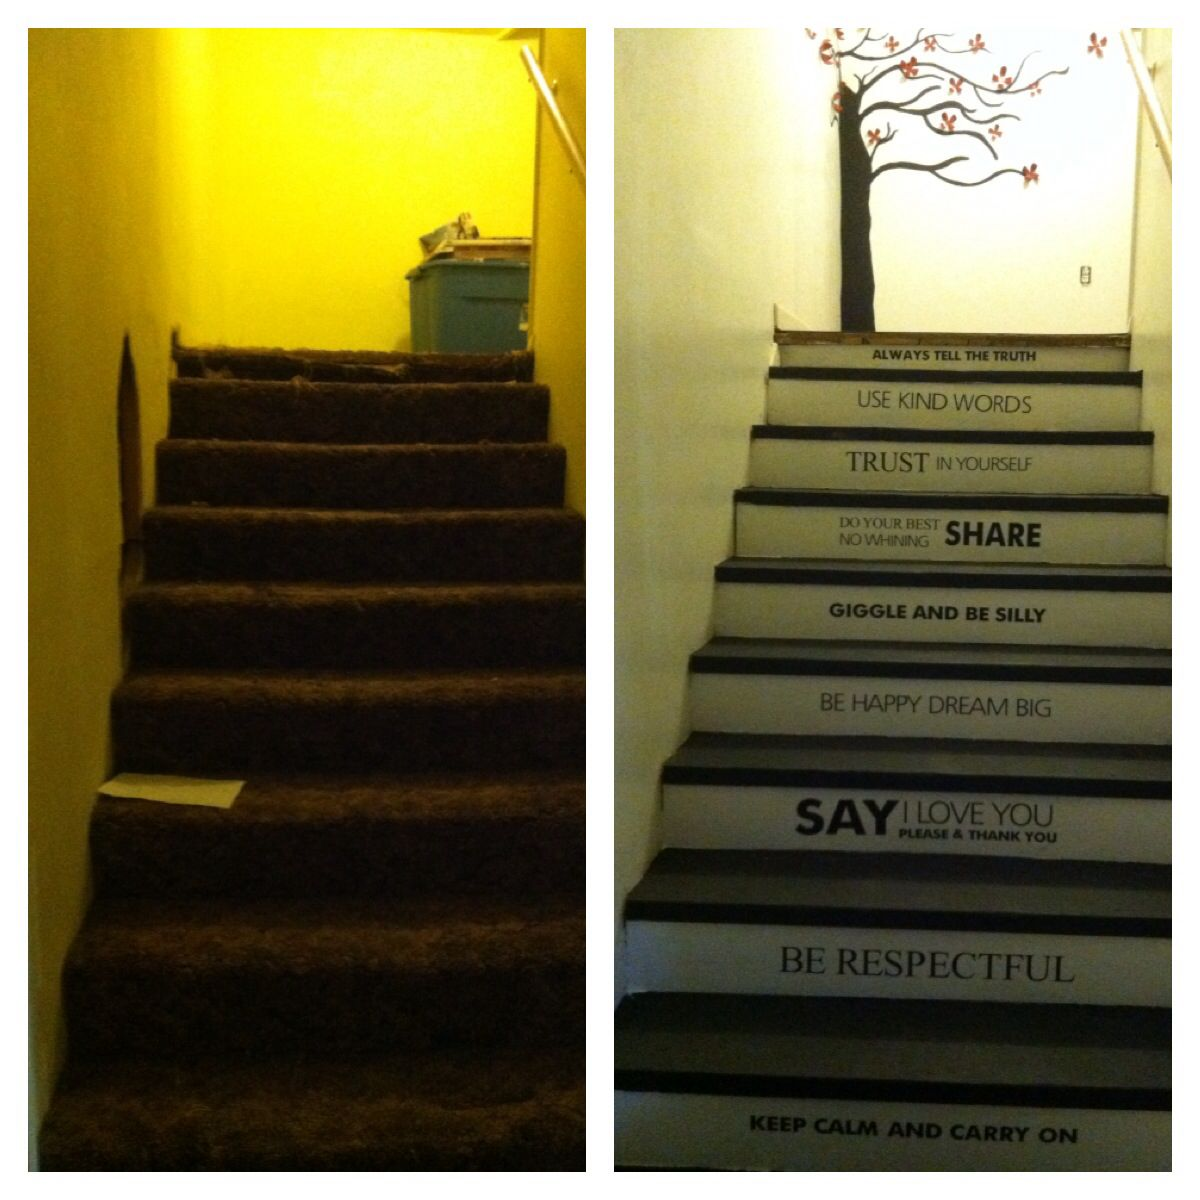 Stairway Makeover Using Umbra 3 D Wall Art, Behr Deck Paint For Stairs And